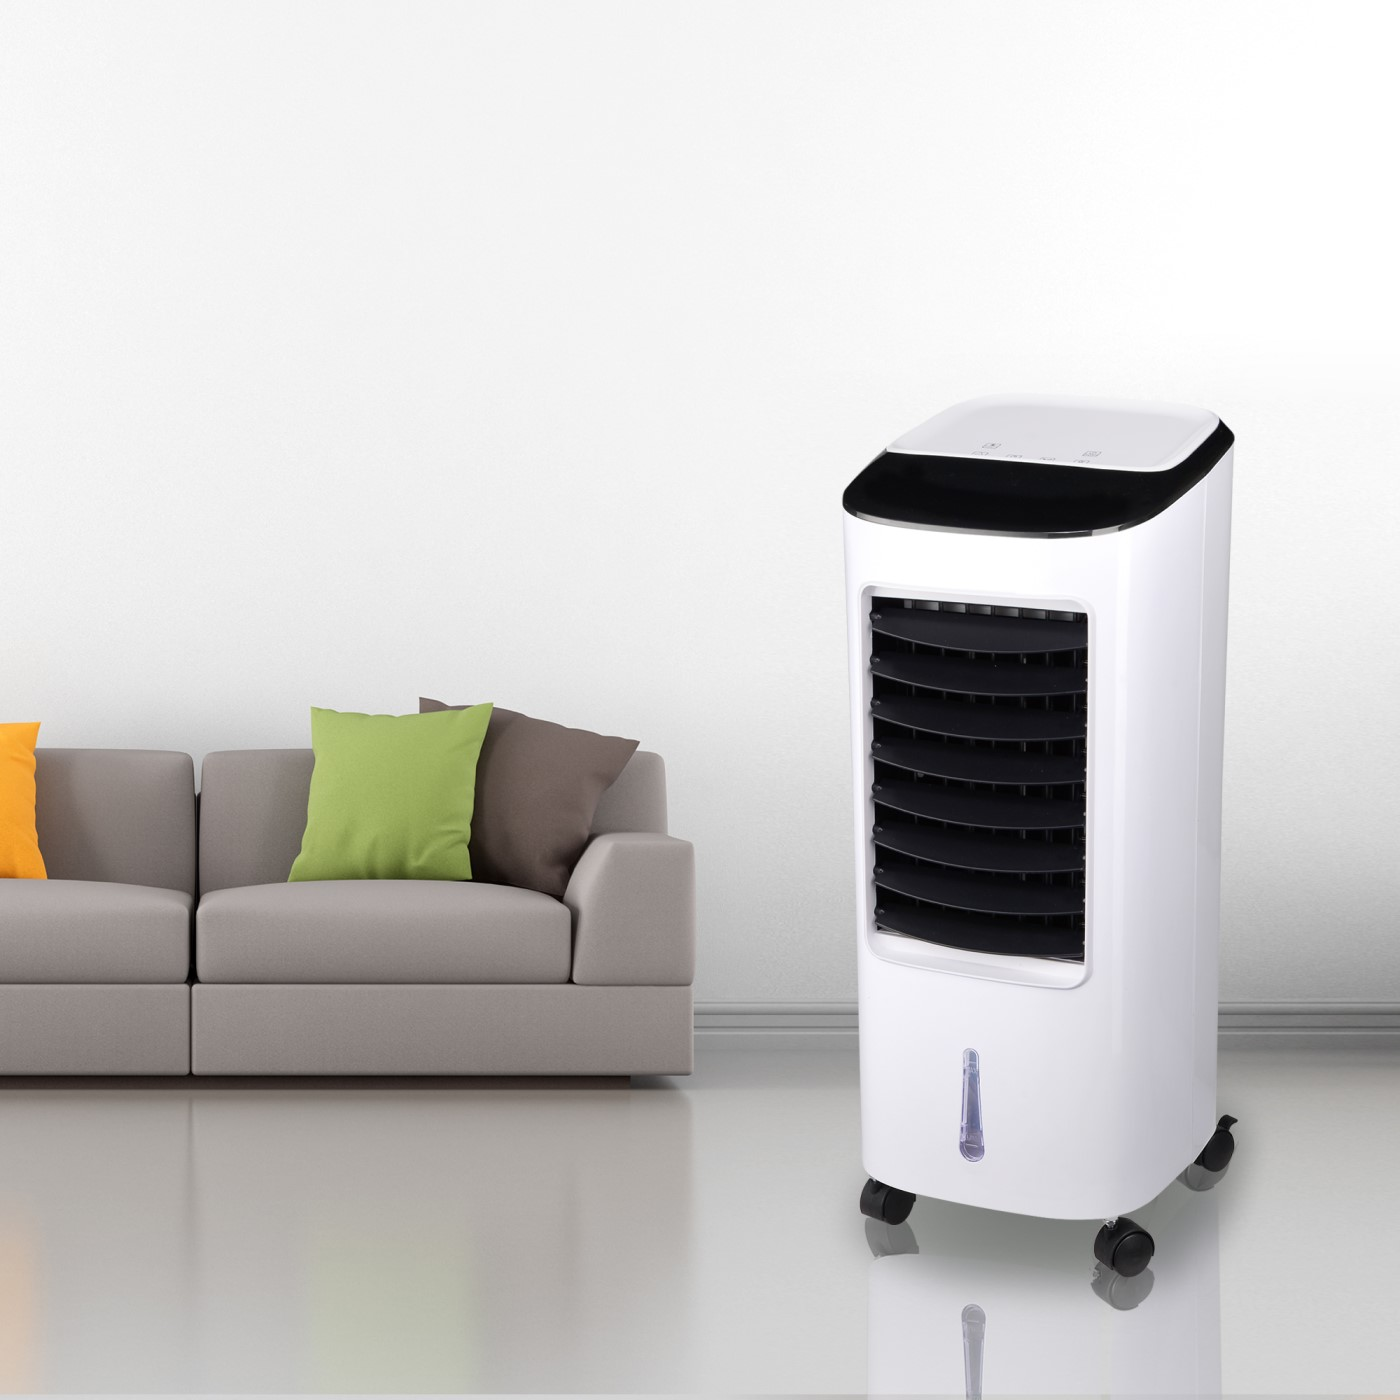 Get The Best Portable Air Cooler With Touch Screen Remote From This  Retailer Now - High Tech Deck